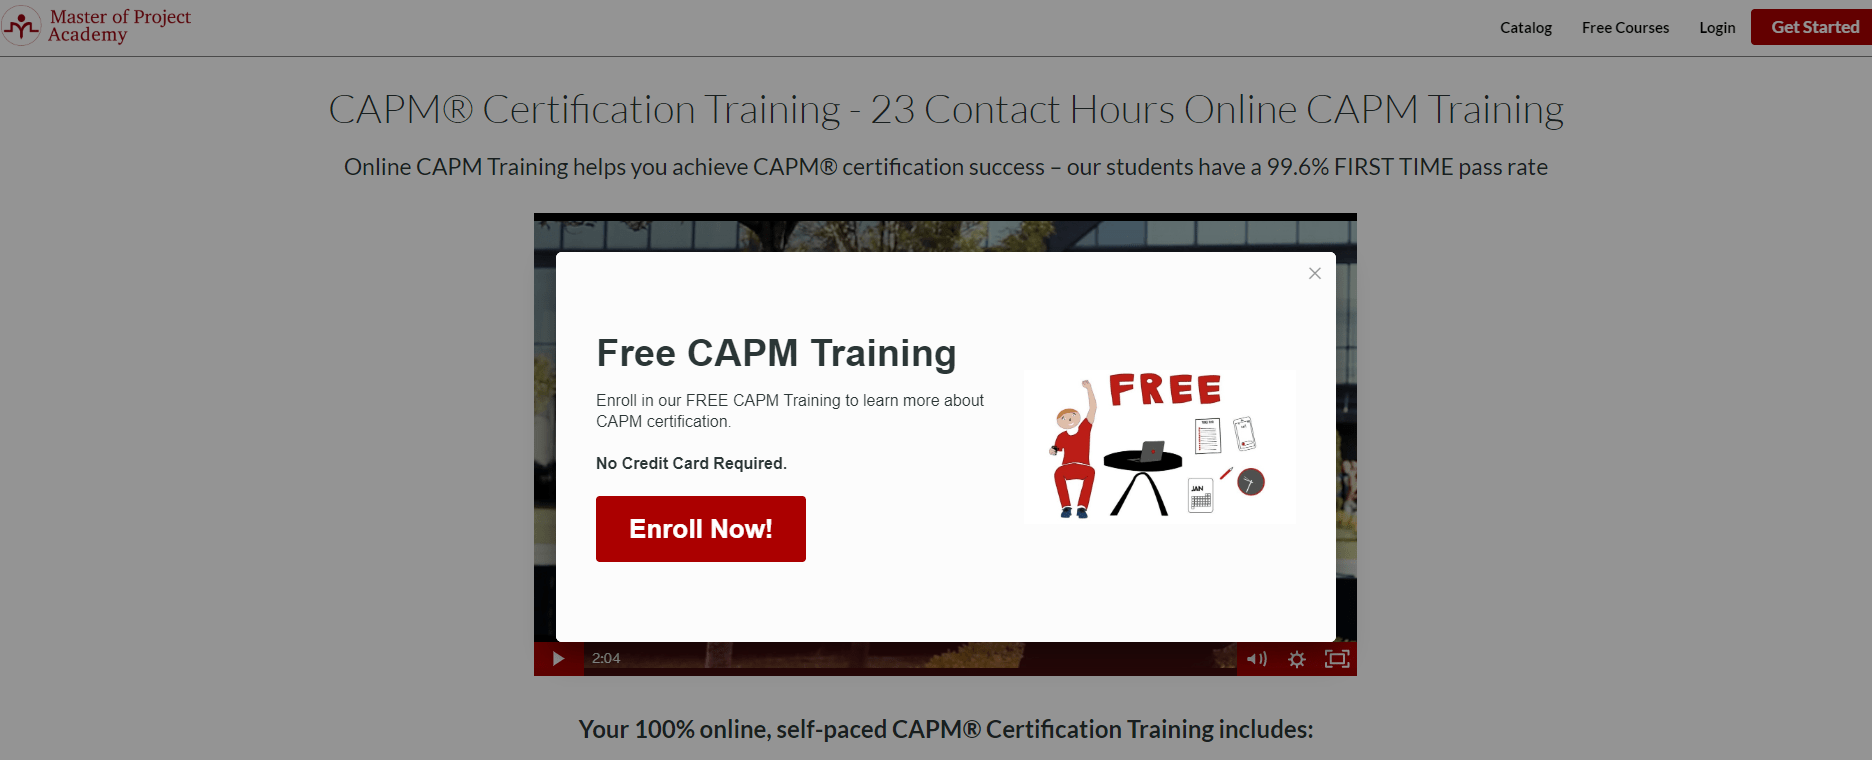 Master of Project Academy Coupon Codes- CAPM Certification Training